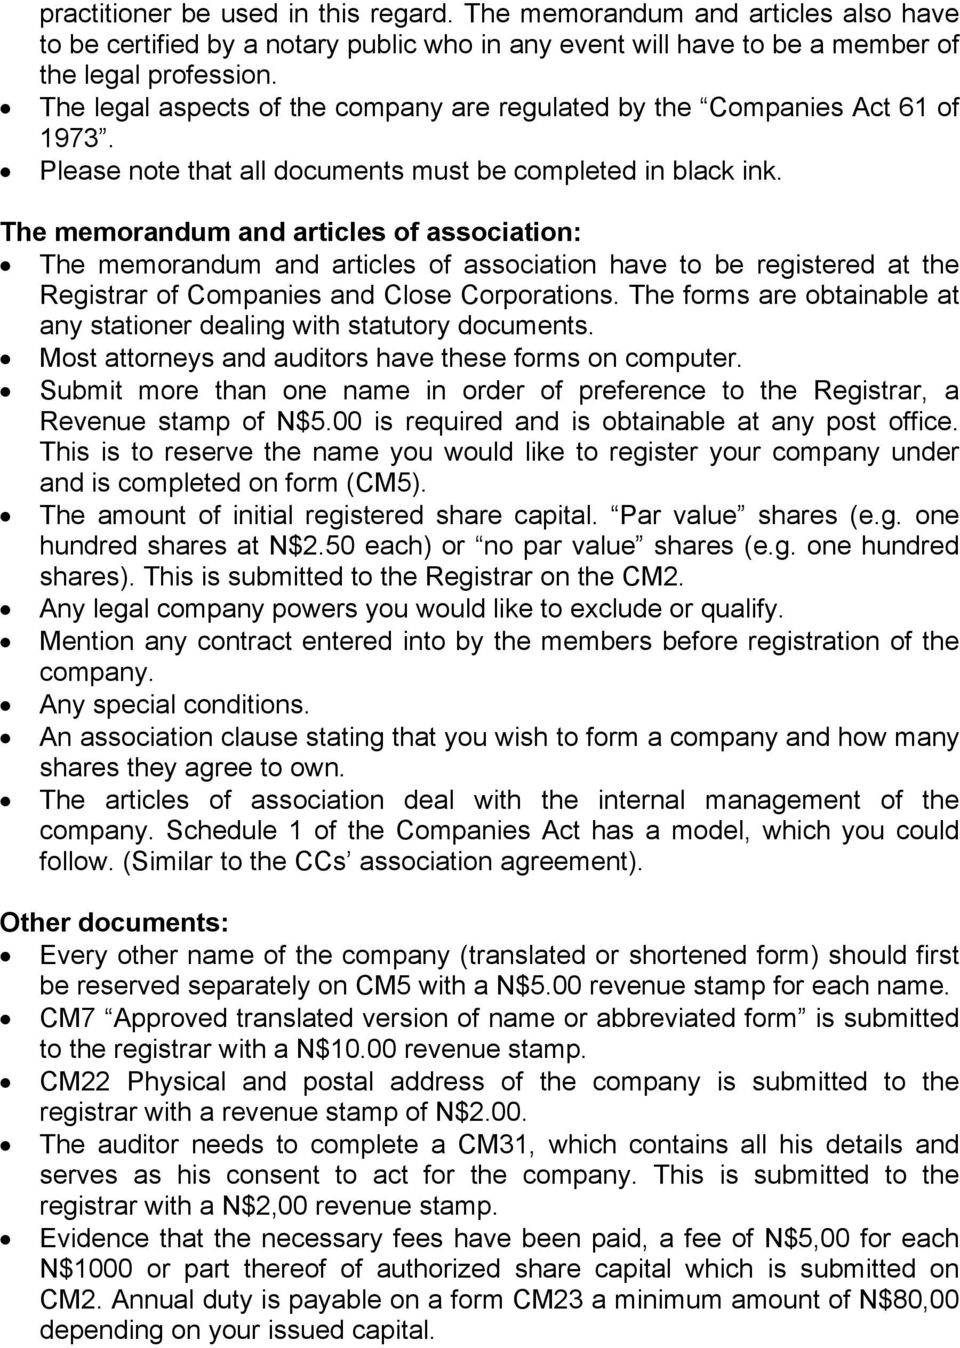 The memorandum and articles of association: The memorandum and articles of association have to be registered at the Registrar of Companies and Close Corporations.